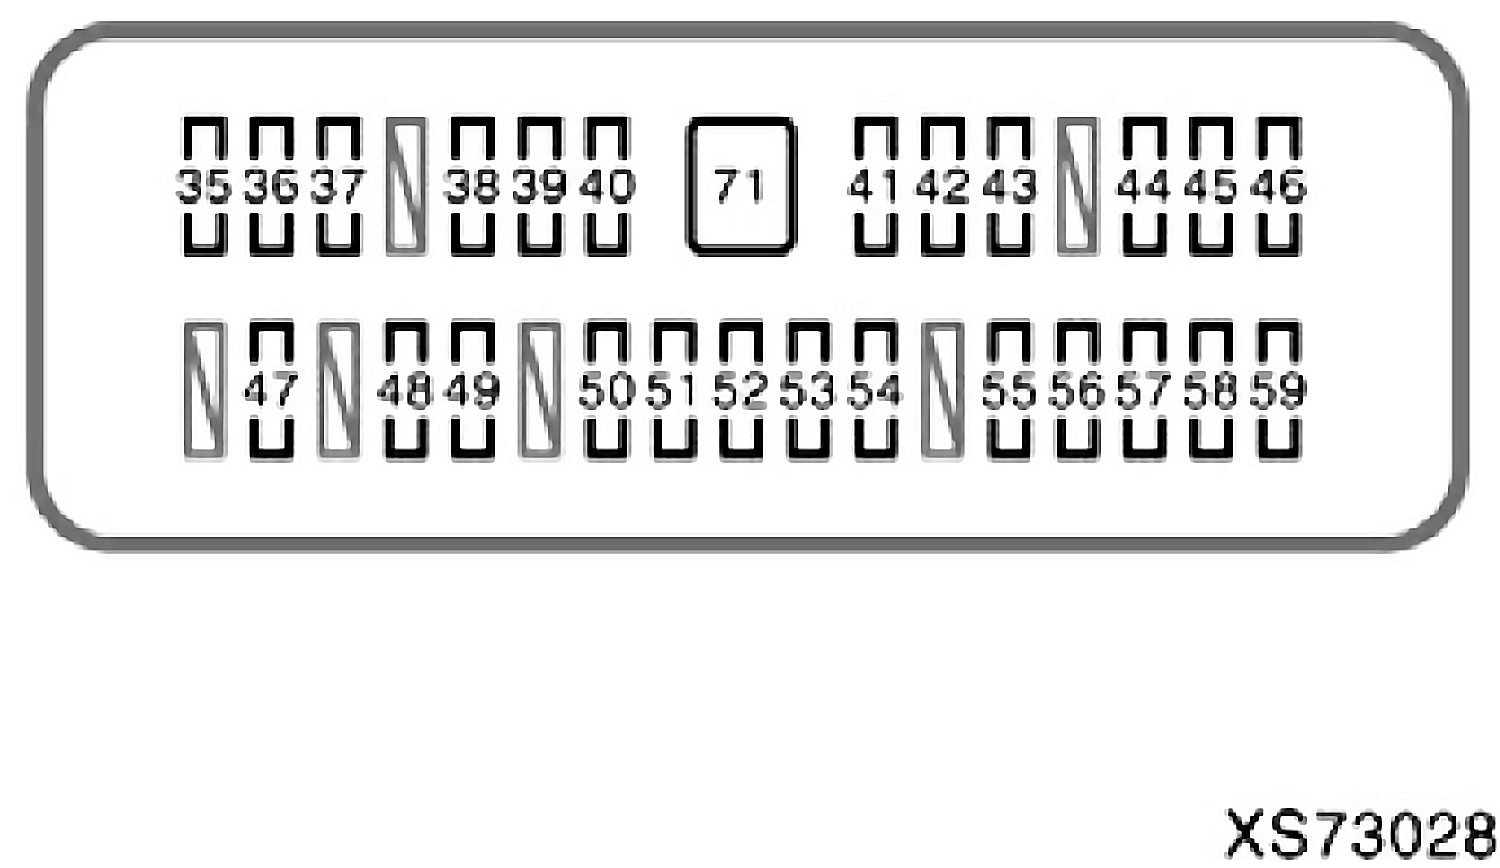 2012 05 31_172837_1 2012 tundra fuse box diagram on 2012 images free download wiring 2010 tundra fuse box diagram at n-0.co